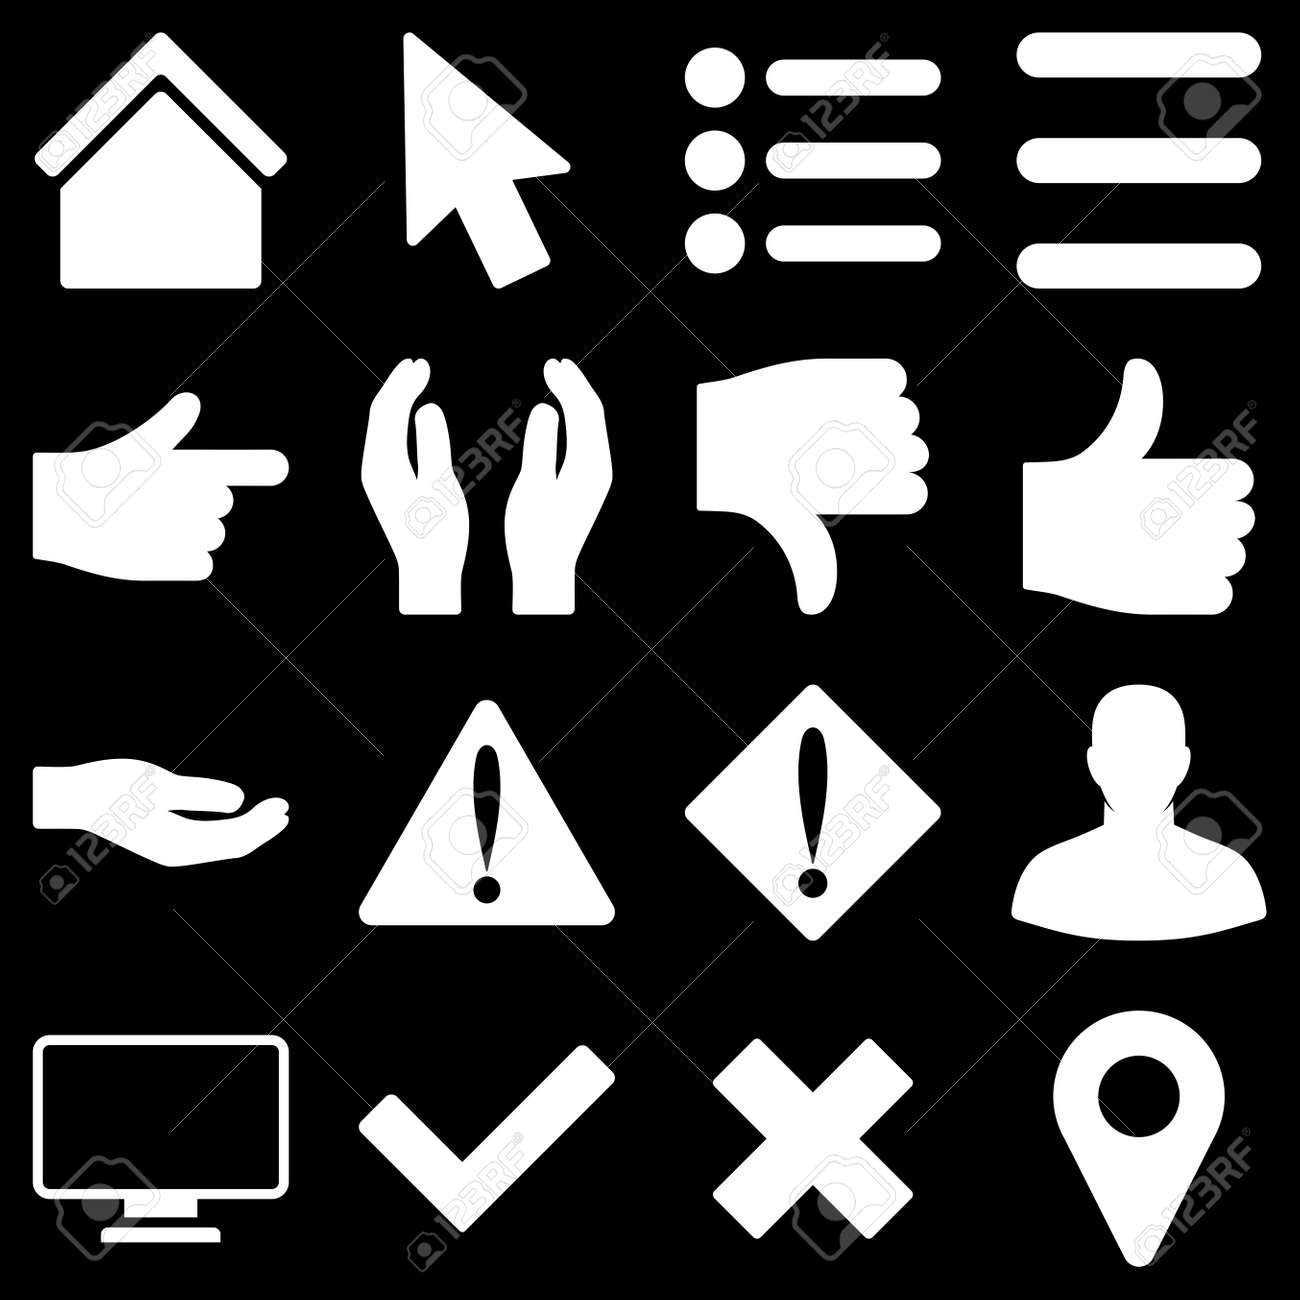 Basic Gesture And Sign Raster Icons These Plain Symbols Use Stock